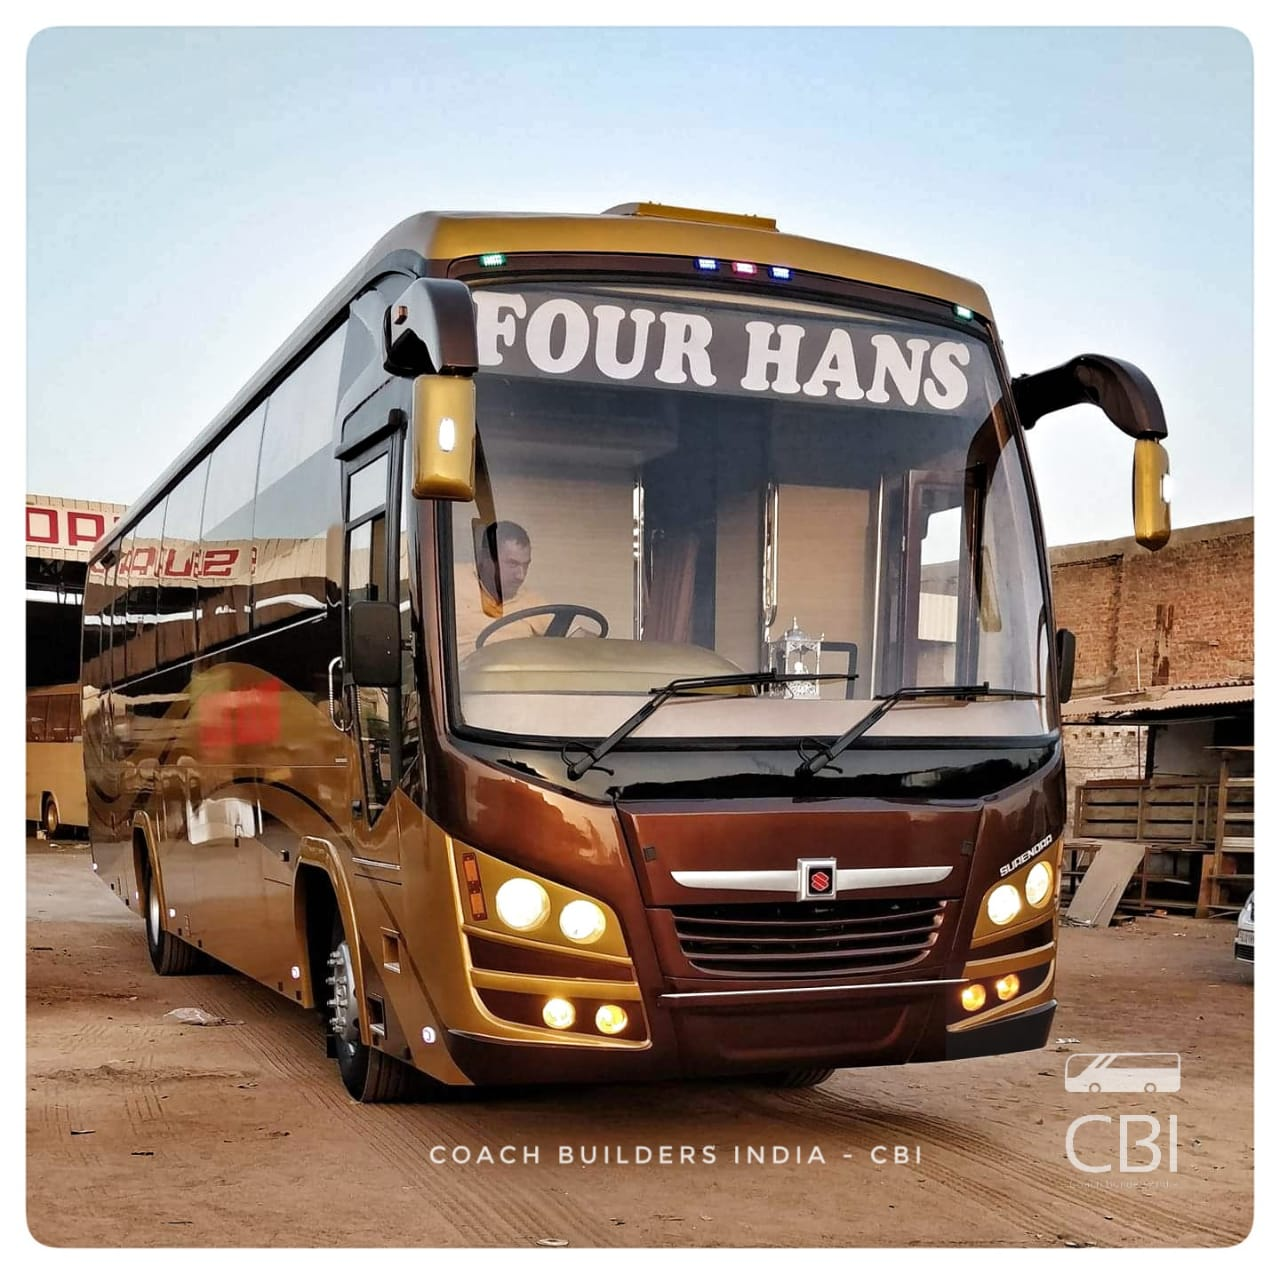 quality coach builders india bus building in india - HD 1280×1274